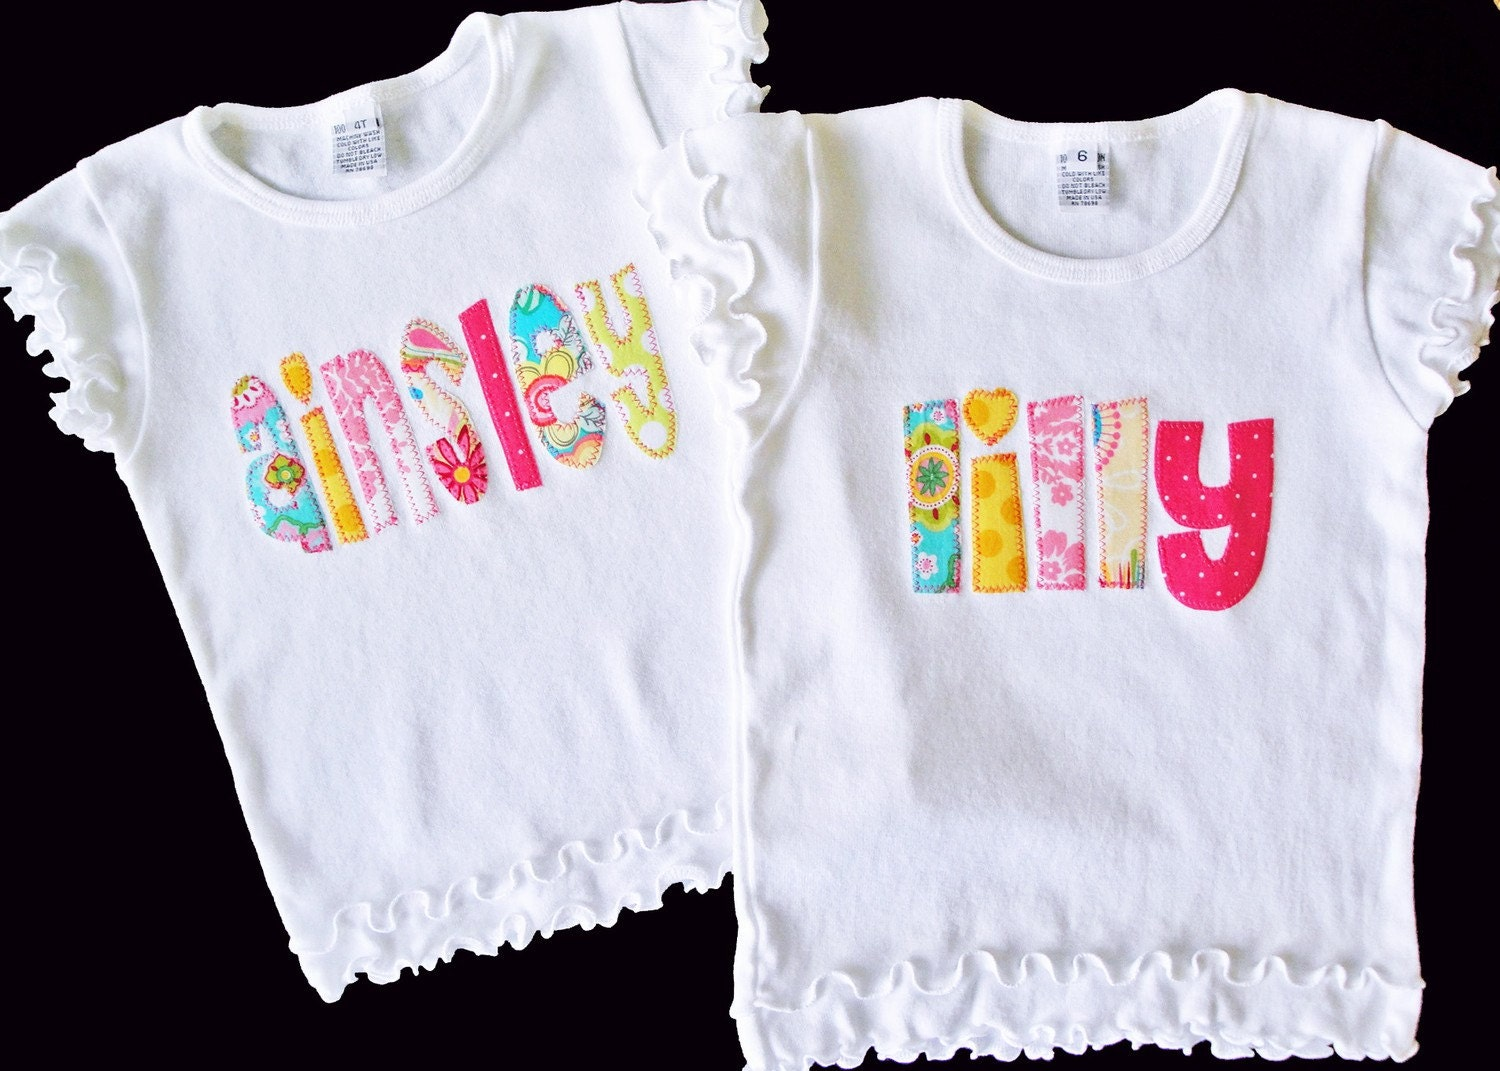 Ruffled Personalized Name Shirt Custom Made For Your Little One 12m to 6Y